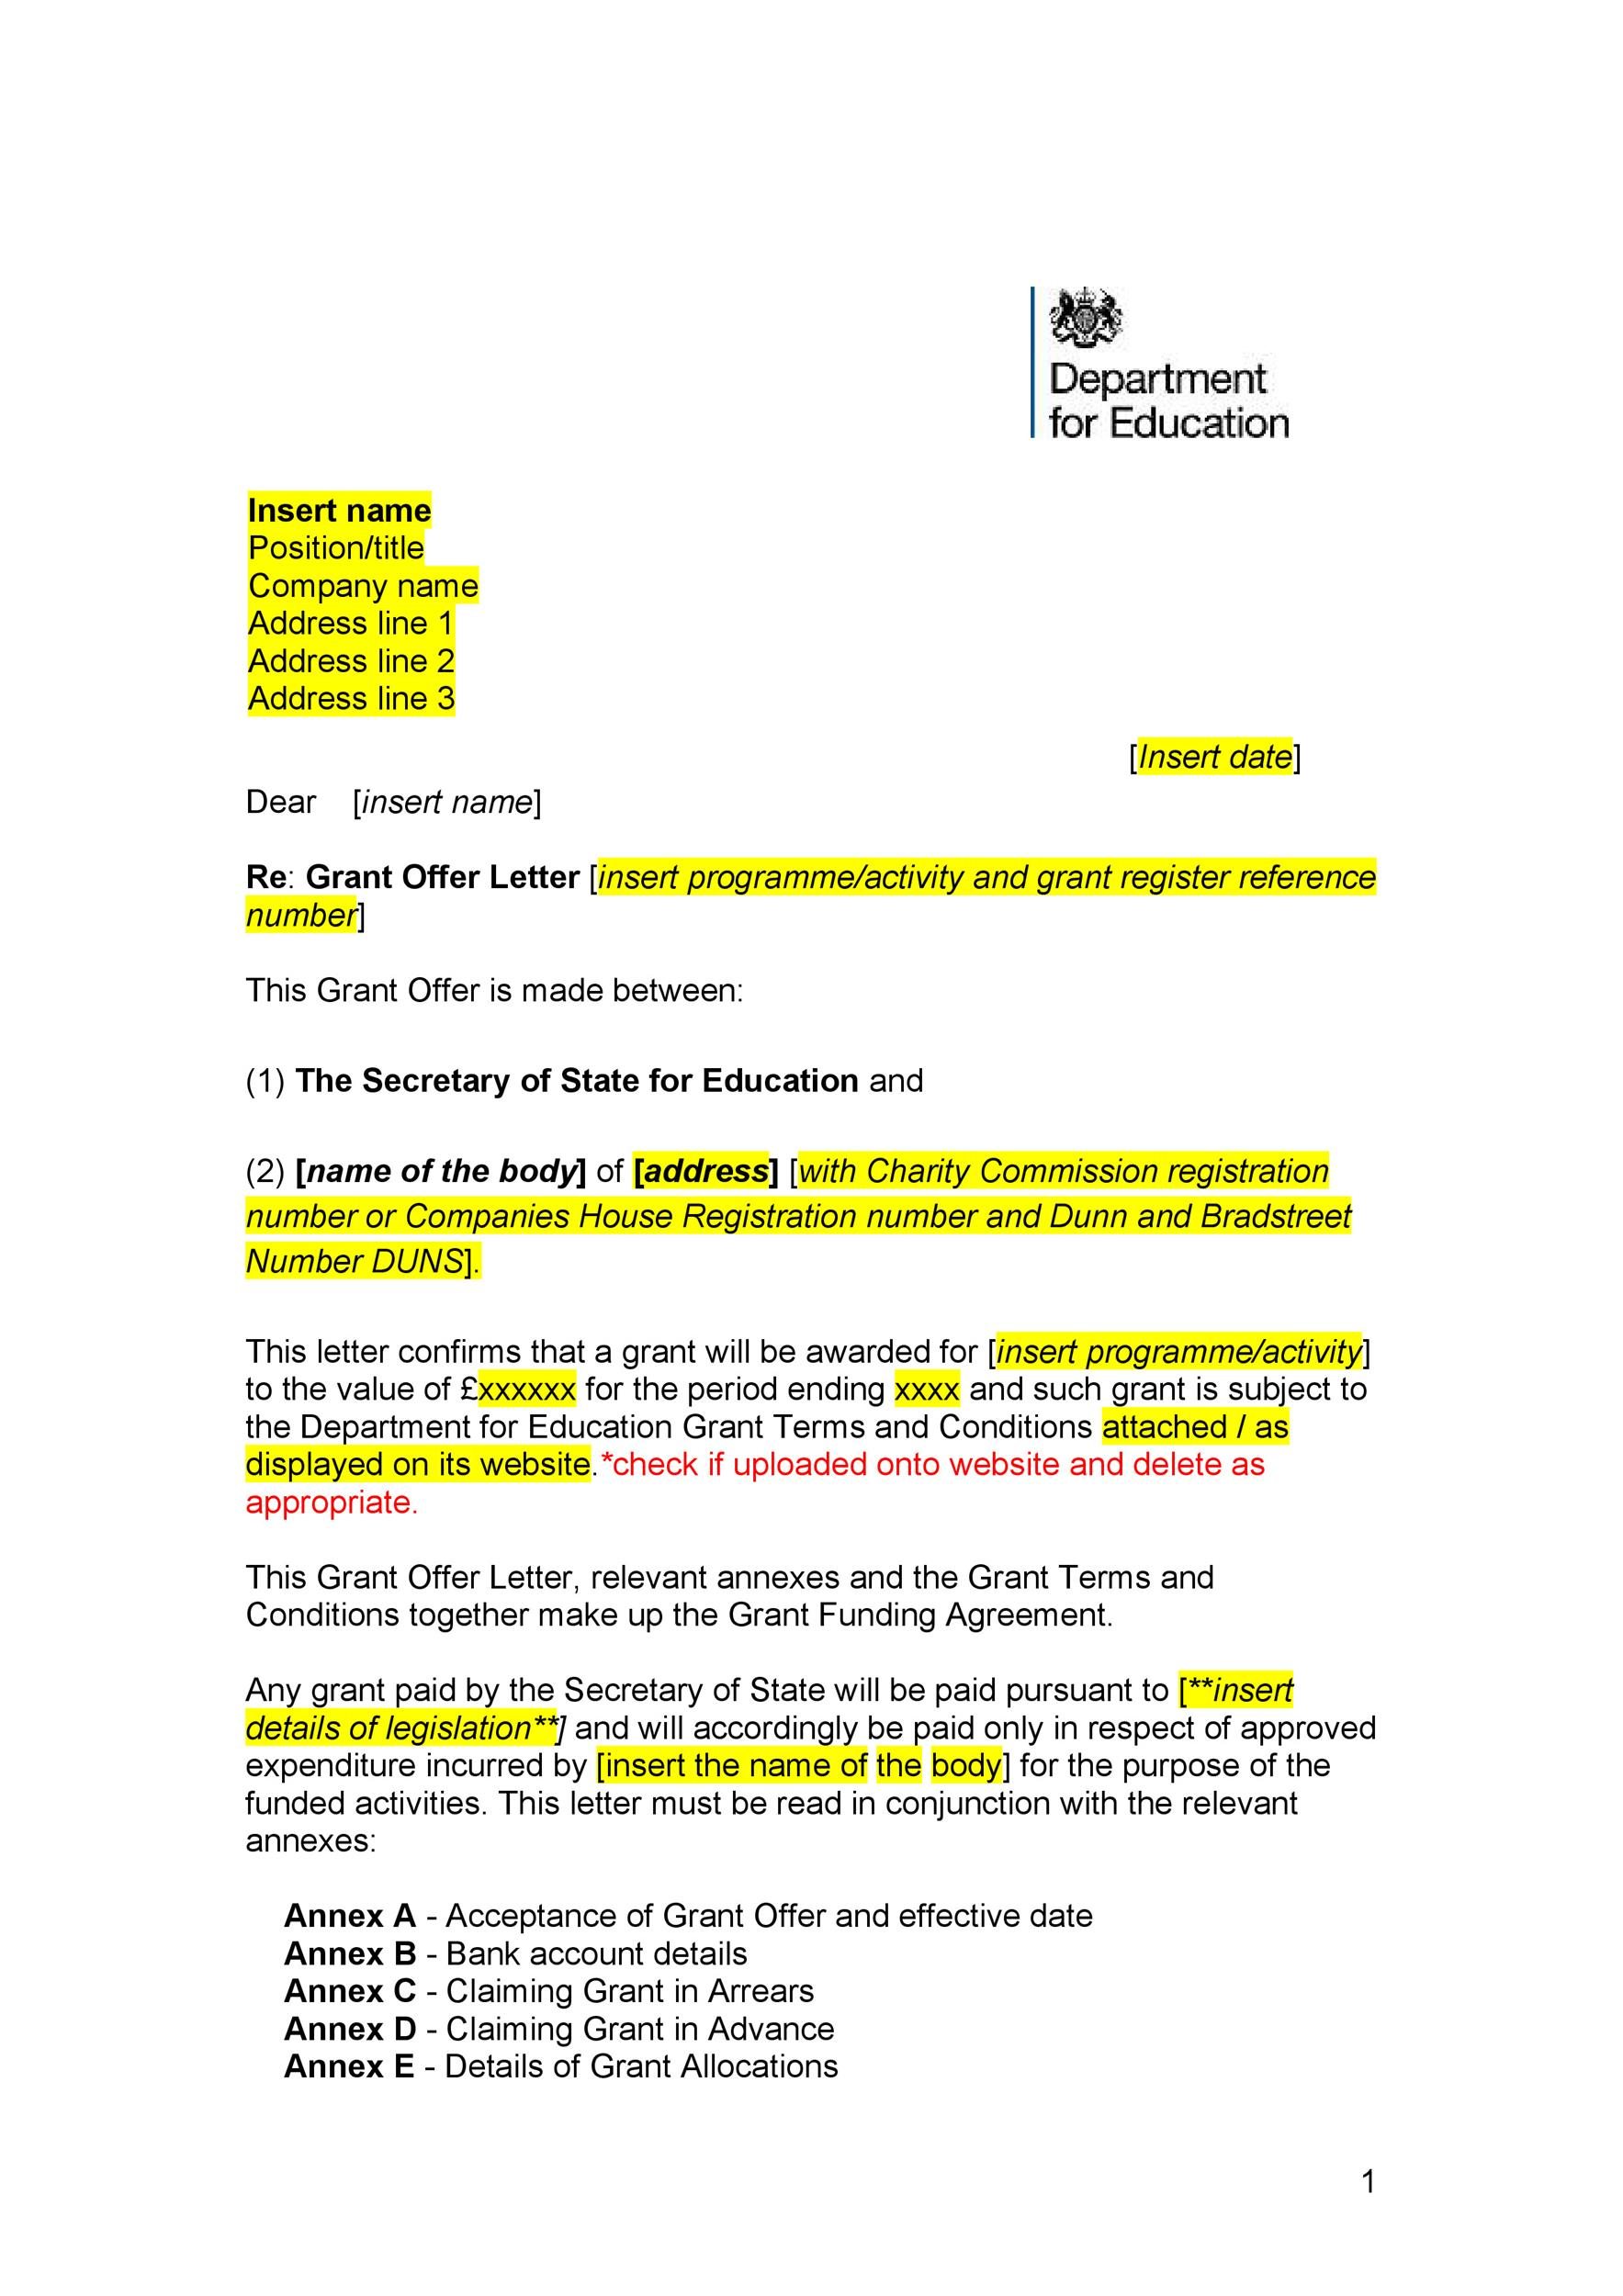 fantastic offer letter templates employment counter offer job offer letter 16